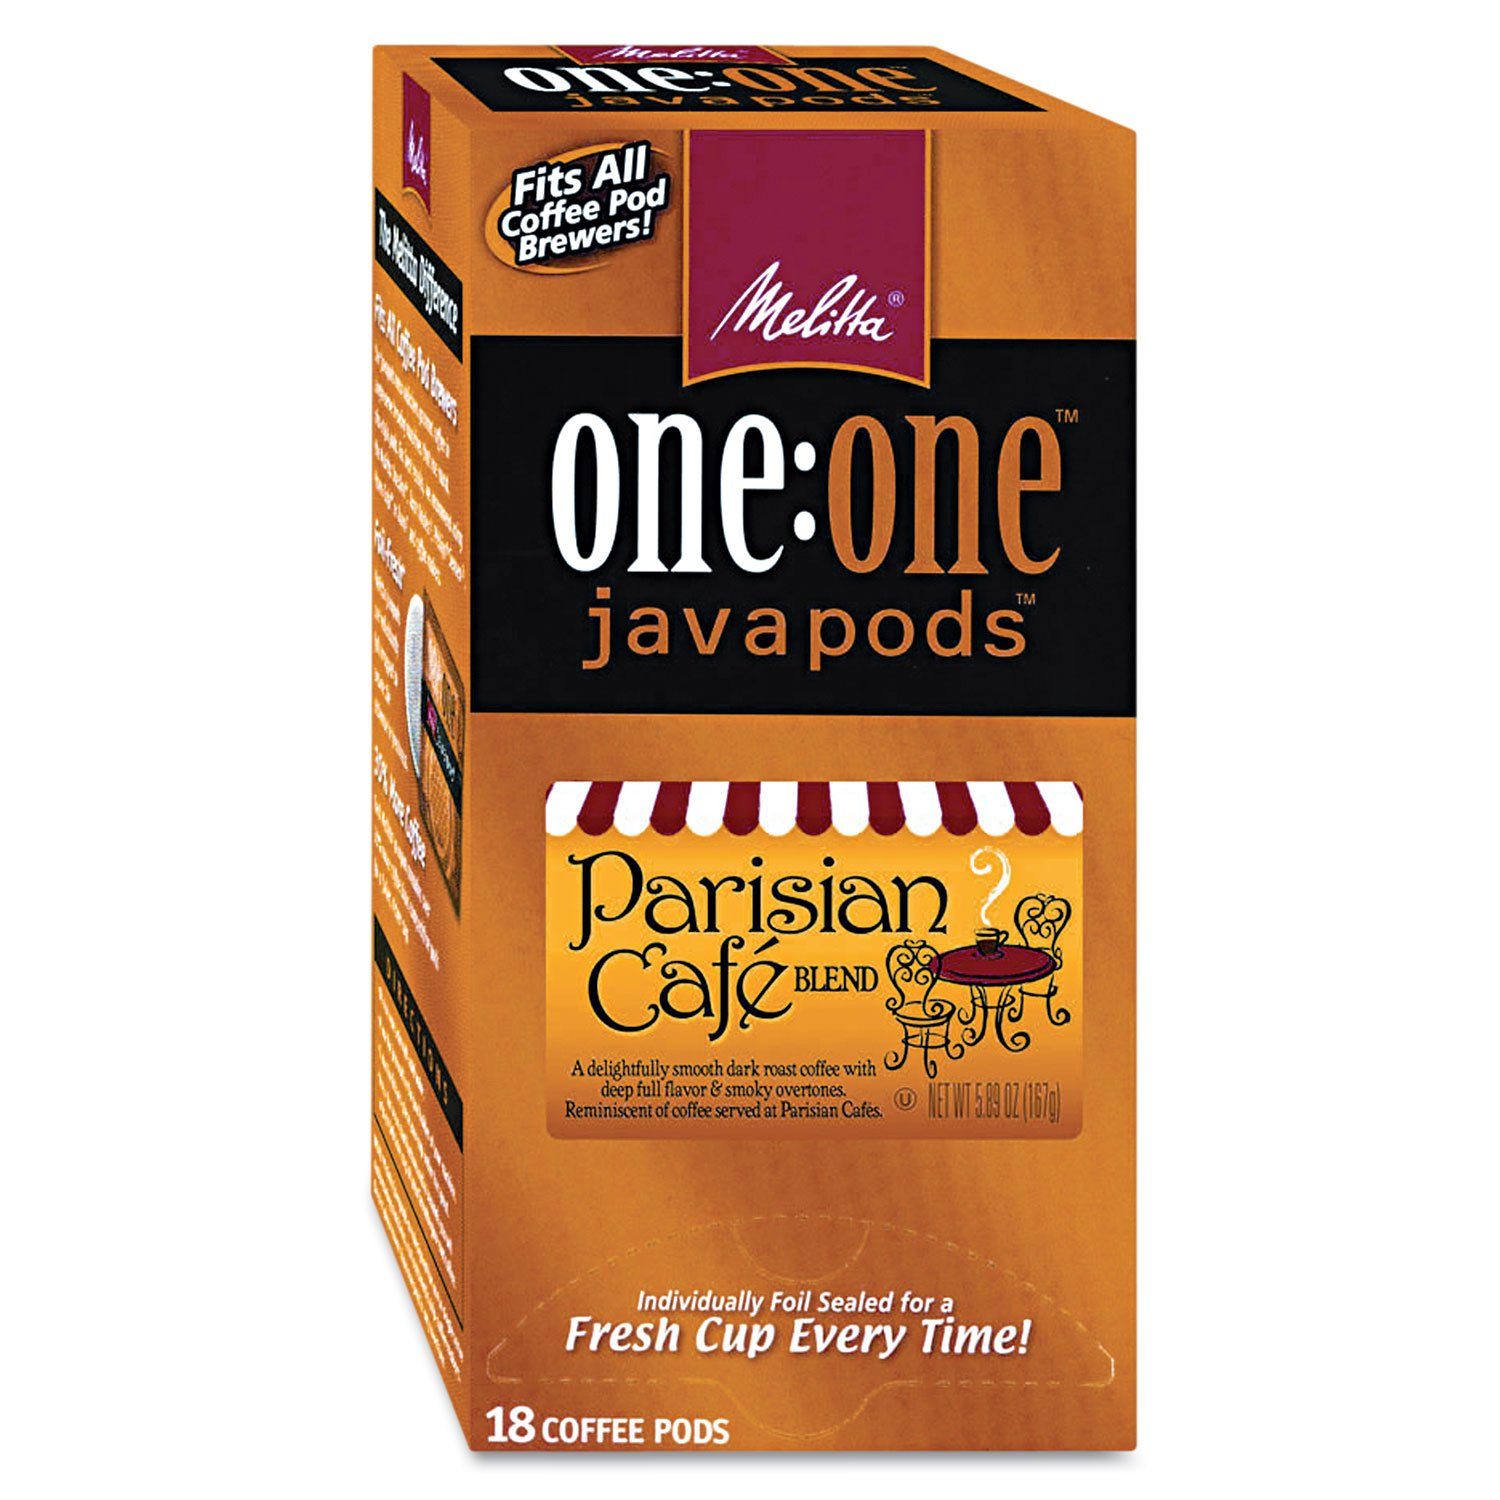 One:one Coffee Pods, Parisian Cafe, 18 Pods/box Tools Equipment Hand Tools